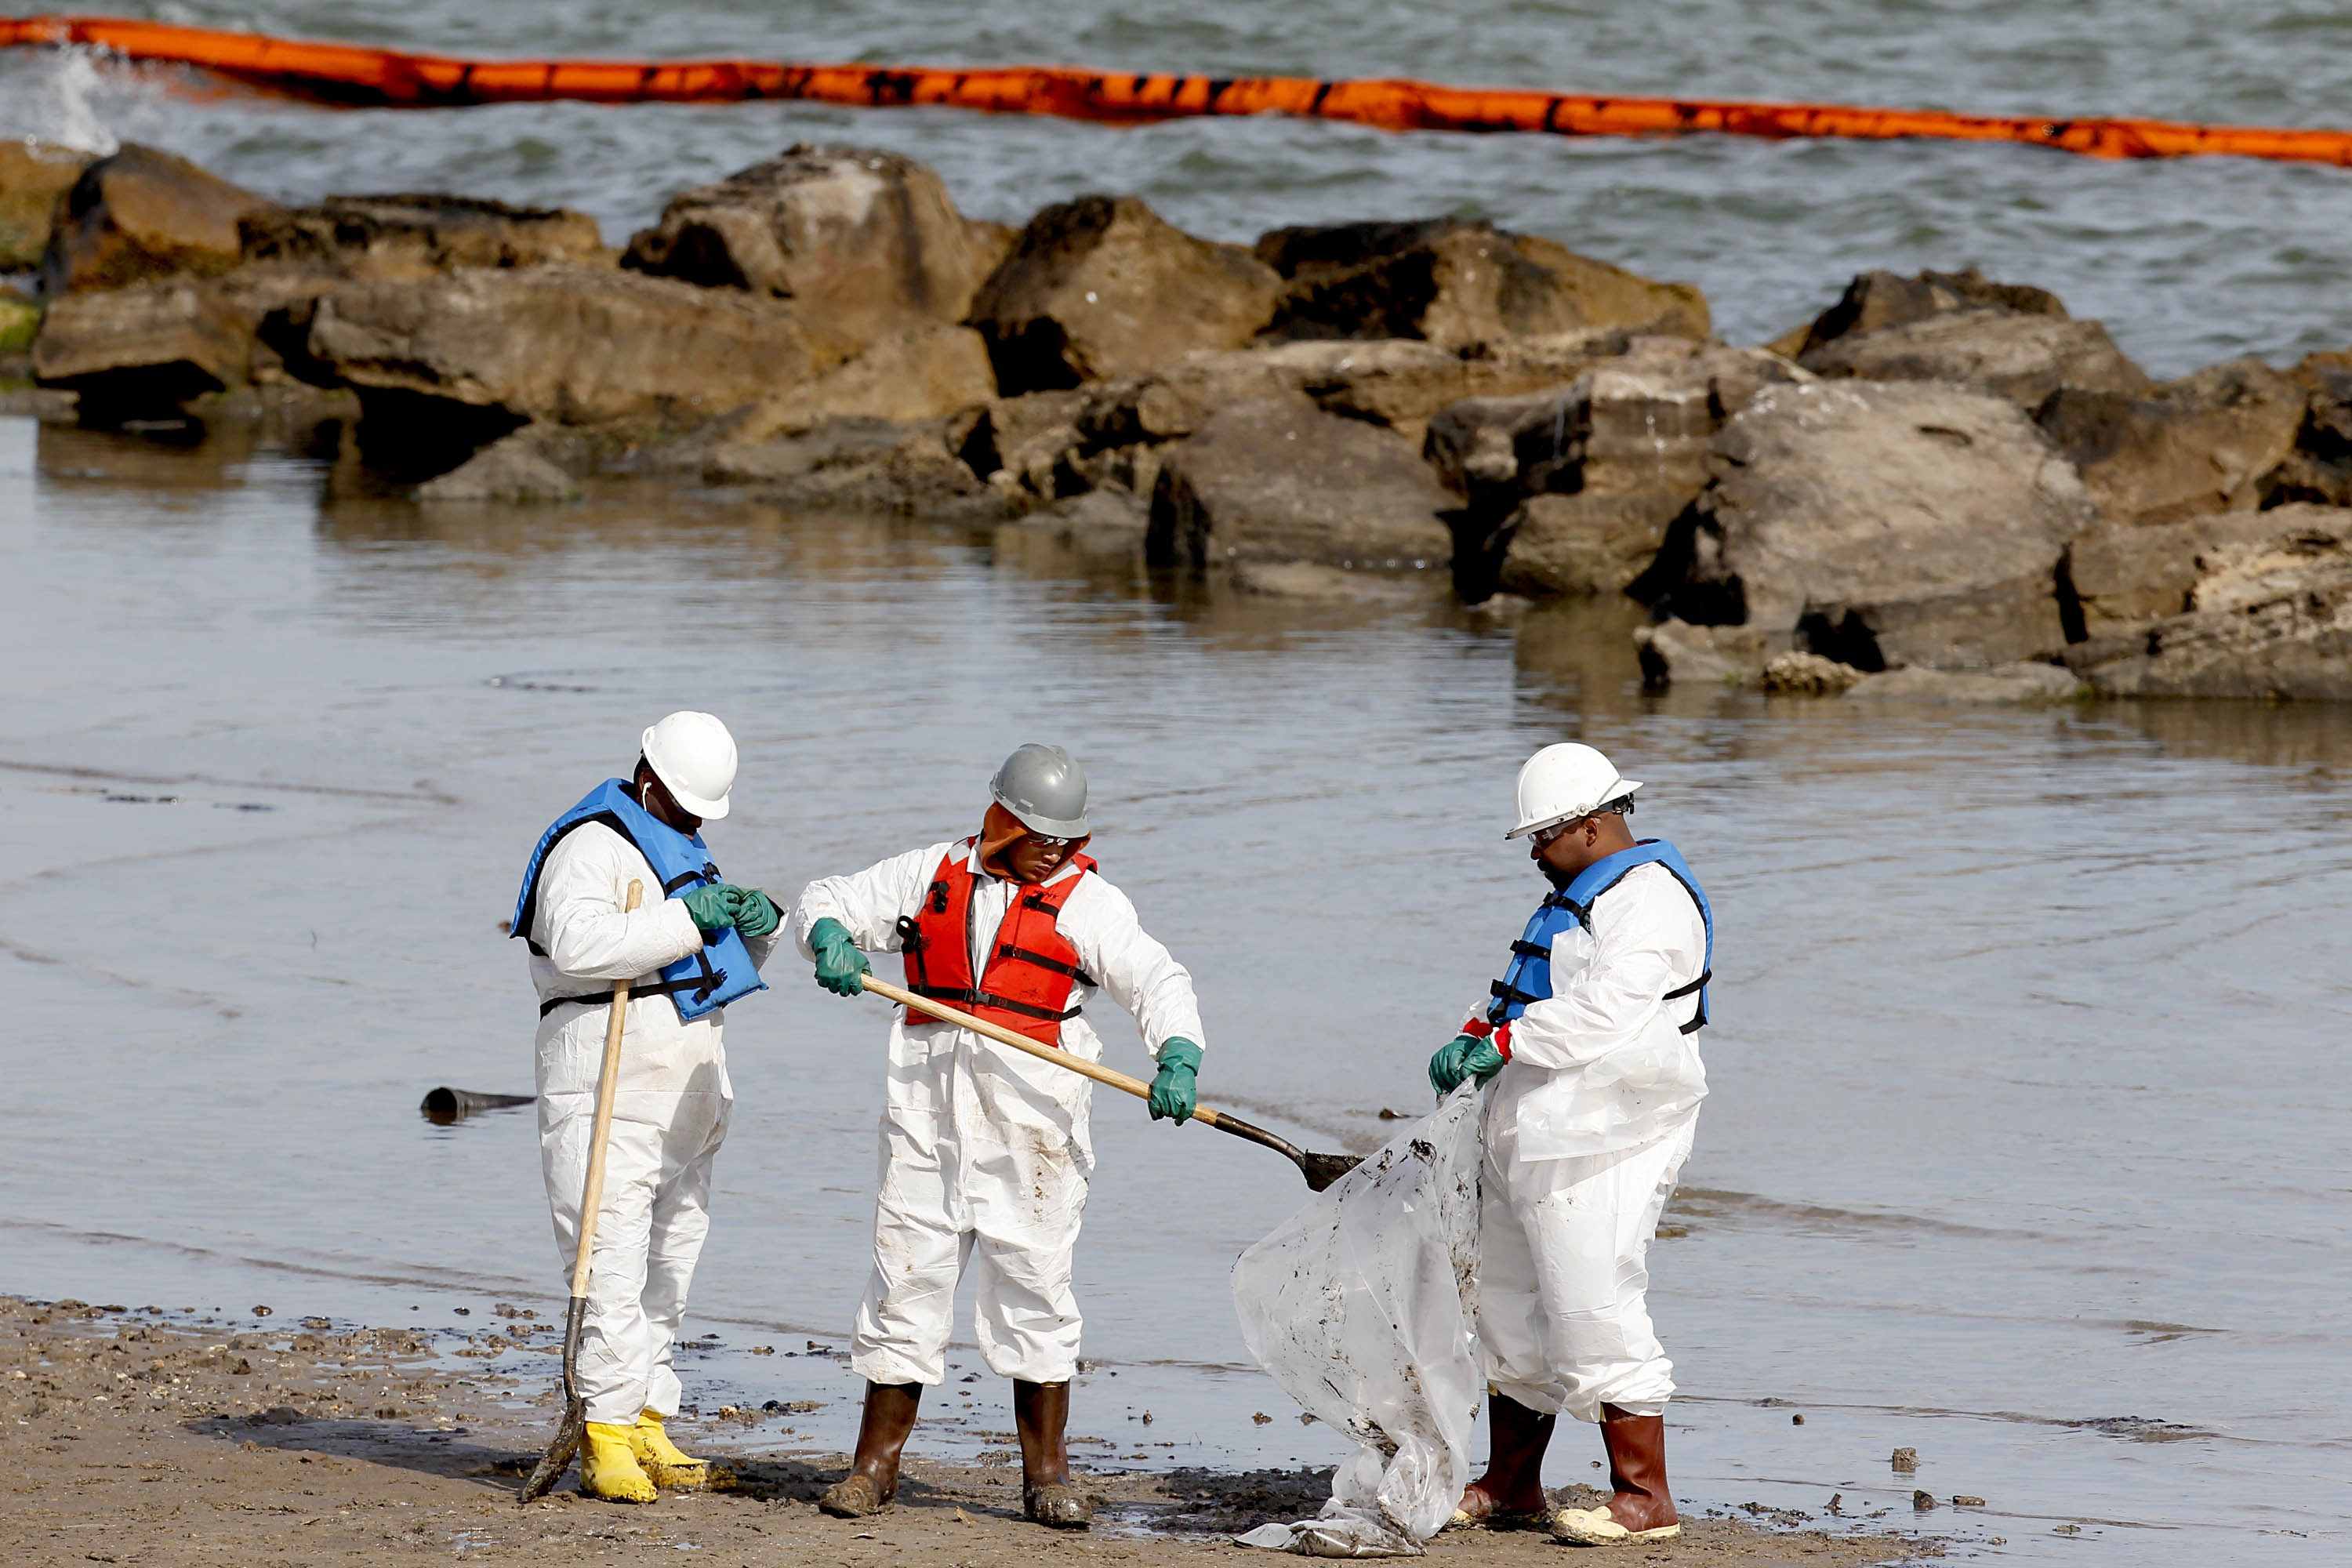 The Harmful Effects of Petrochemicals on the Environment